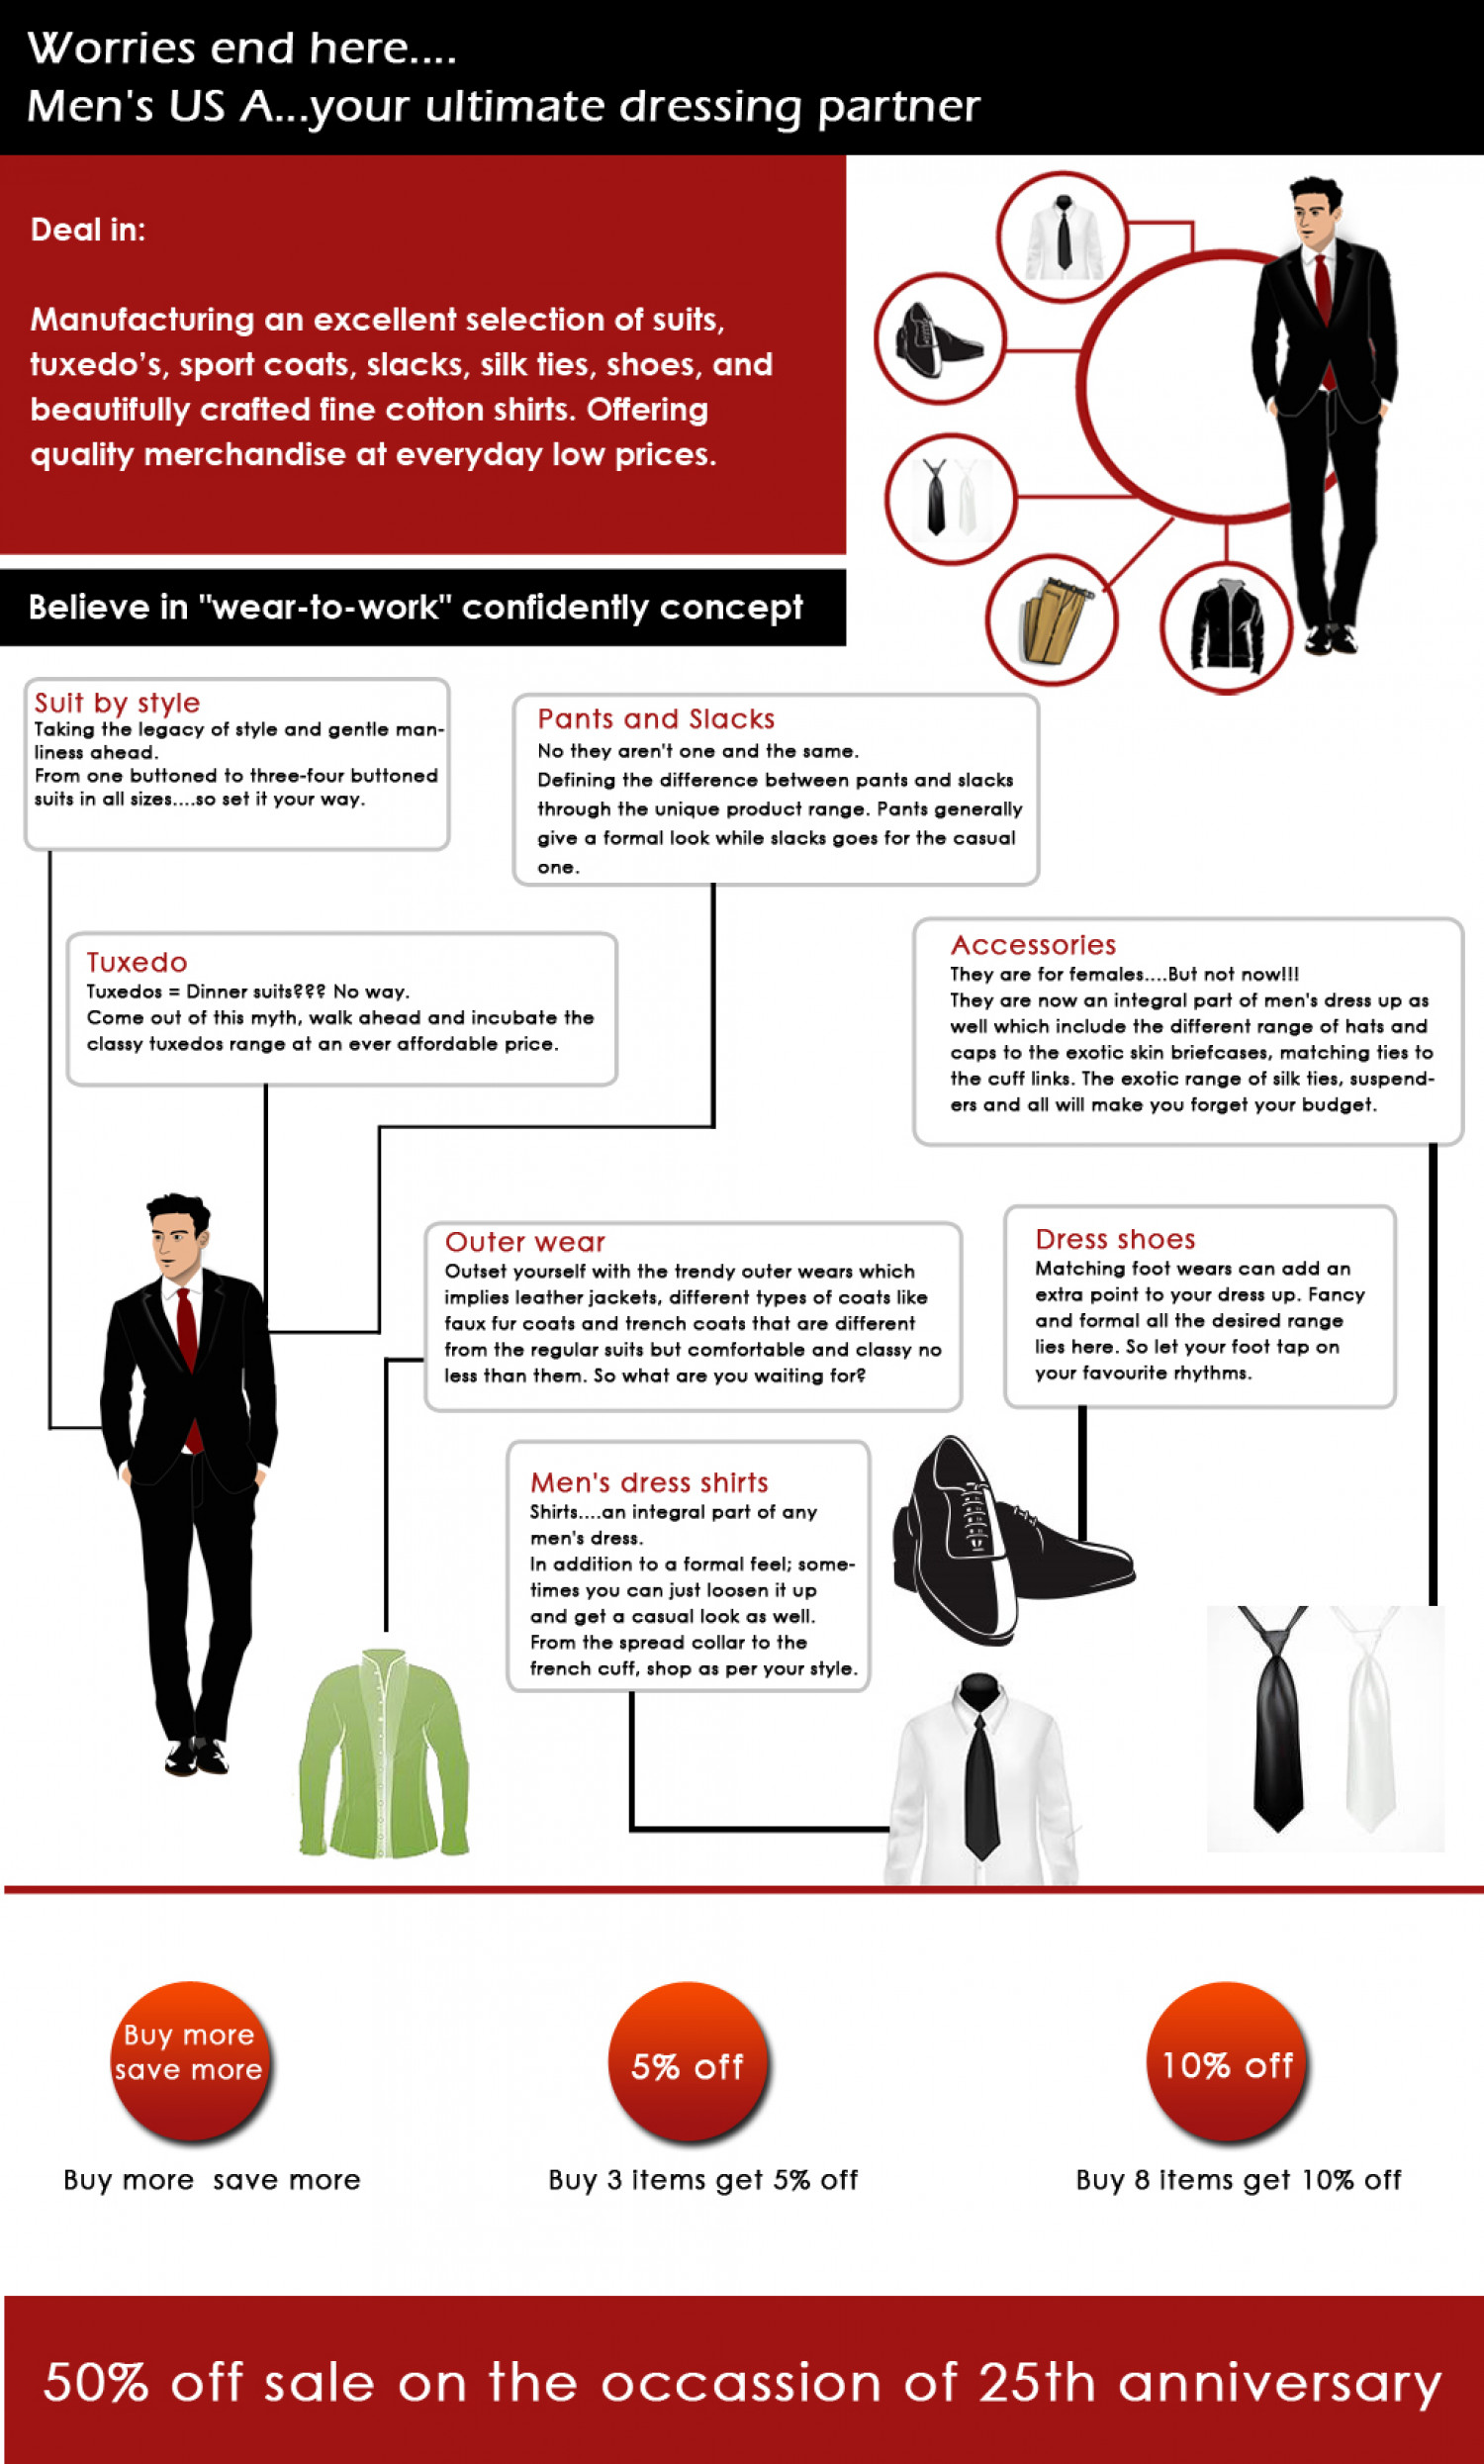 MensUSA- Your Ultimate Dressing Partner Infographic